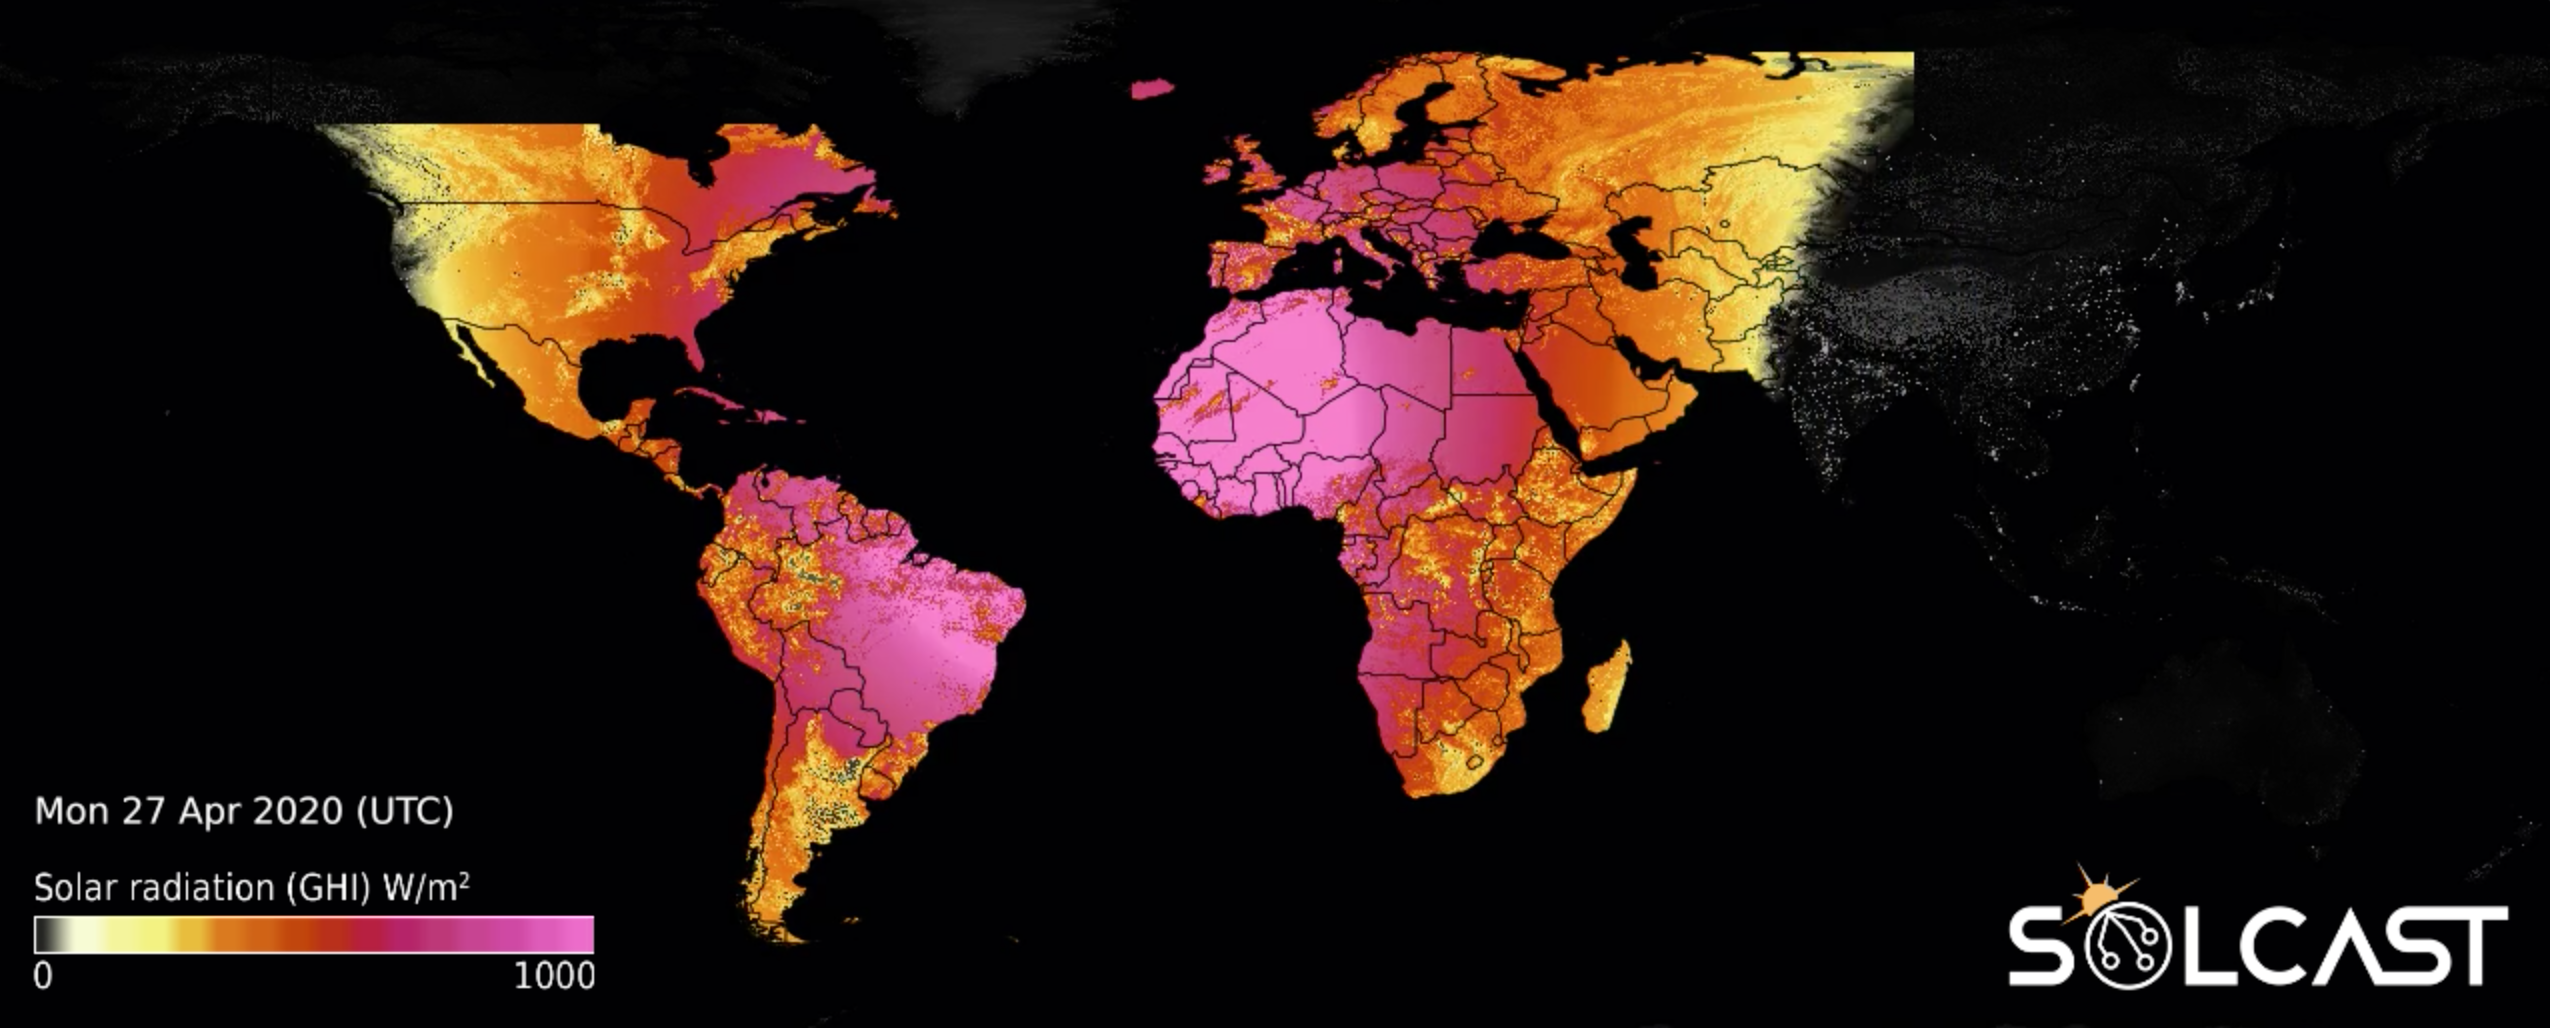 Browsable global solar radiation maps are live